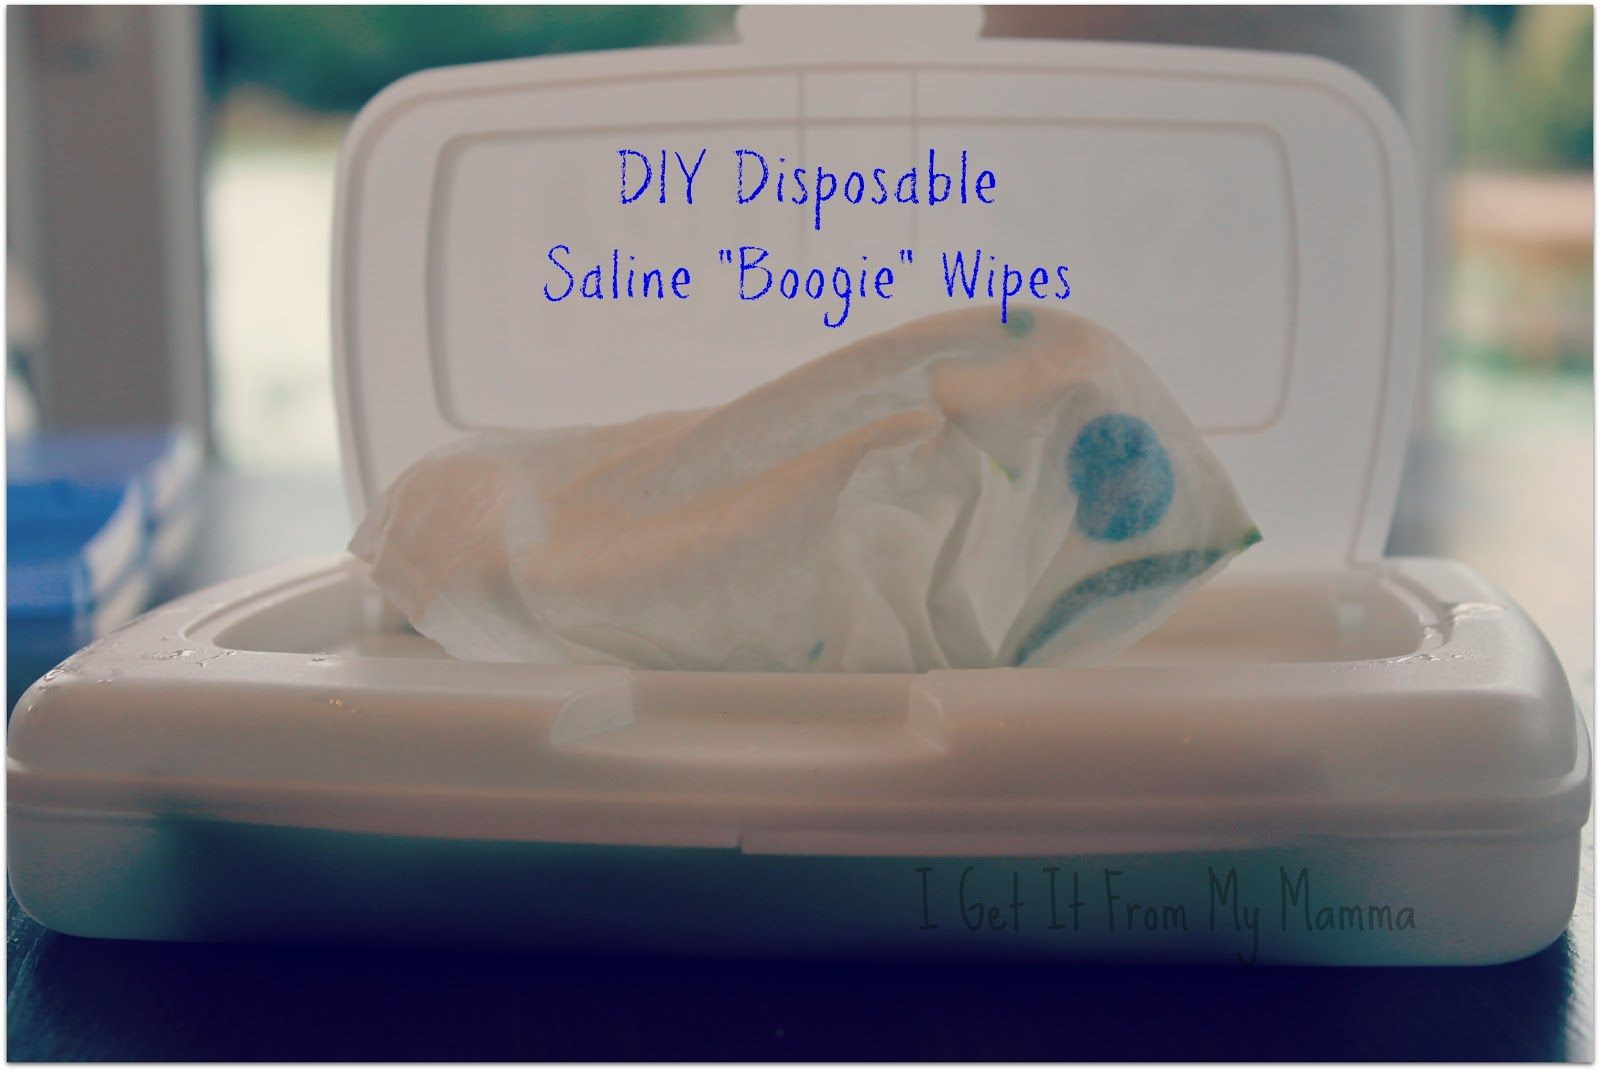 Disposable saline wipes perfect for holiday travel